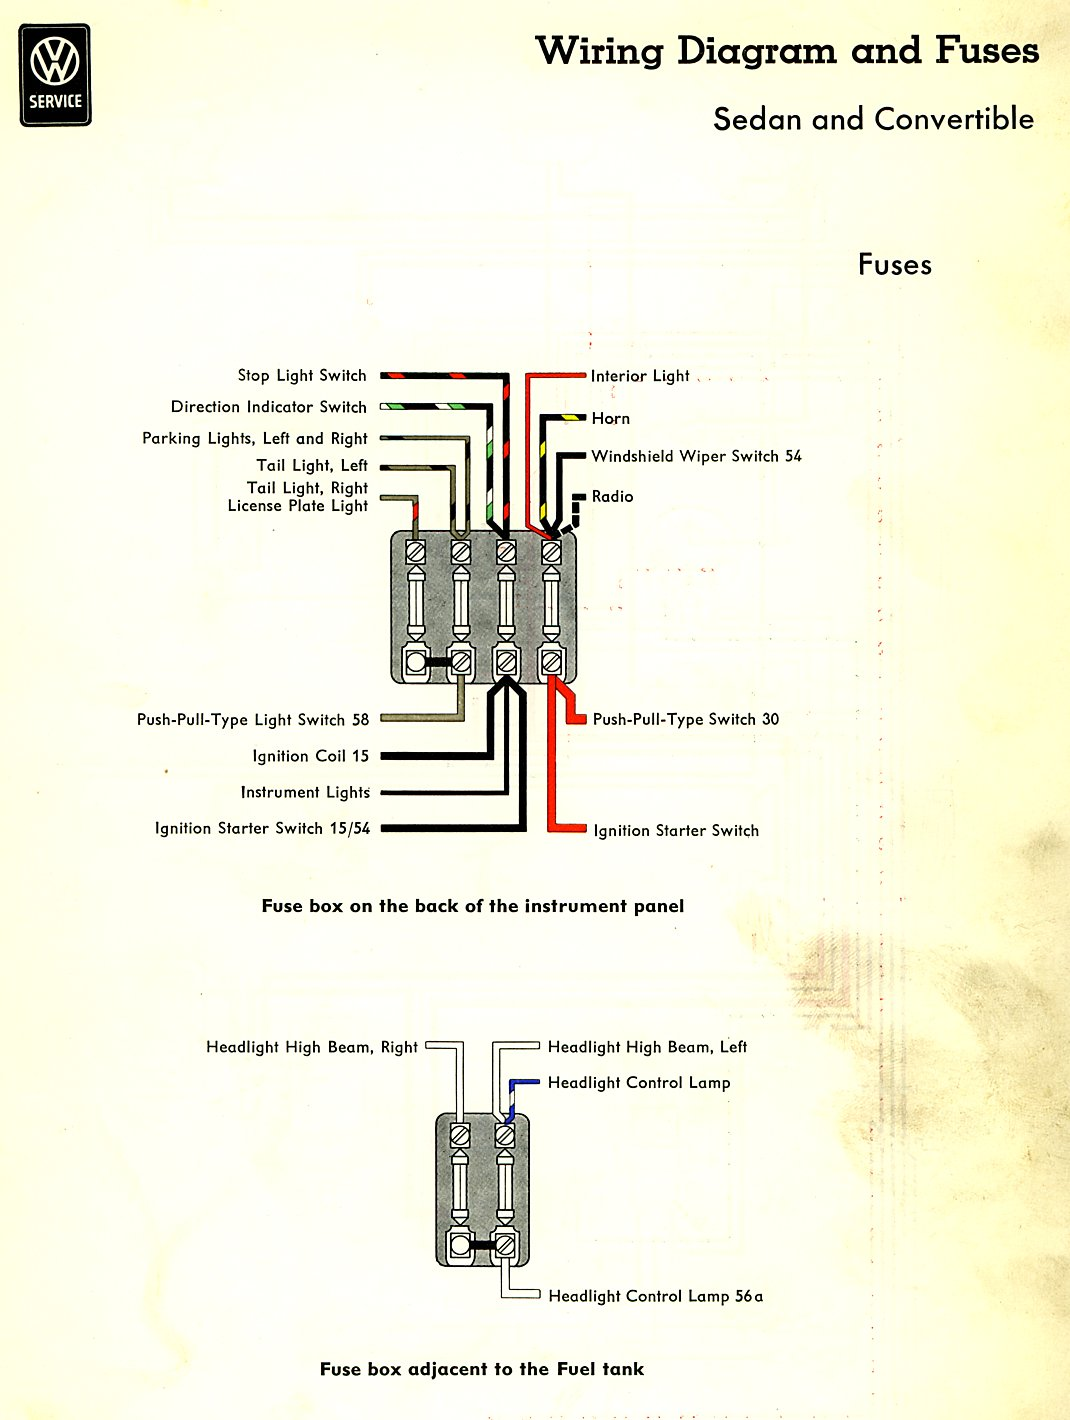 bug_58_fuses thesamba com type 1 wiring diagrams 1984 fj40 fuse box diagram at reclaimingppi.co